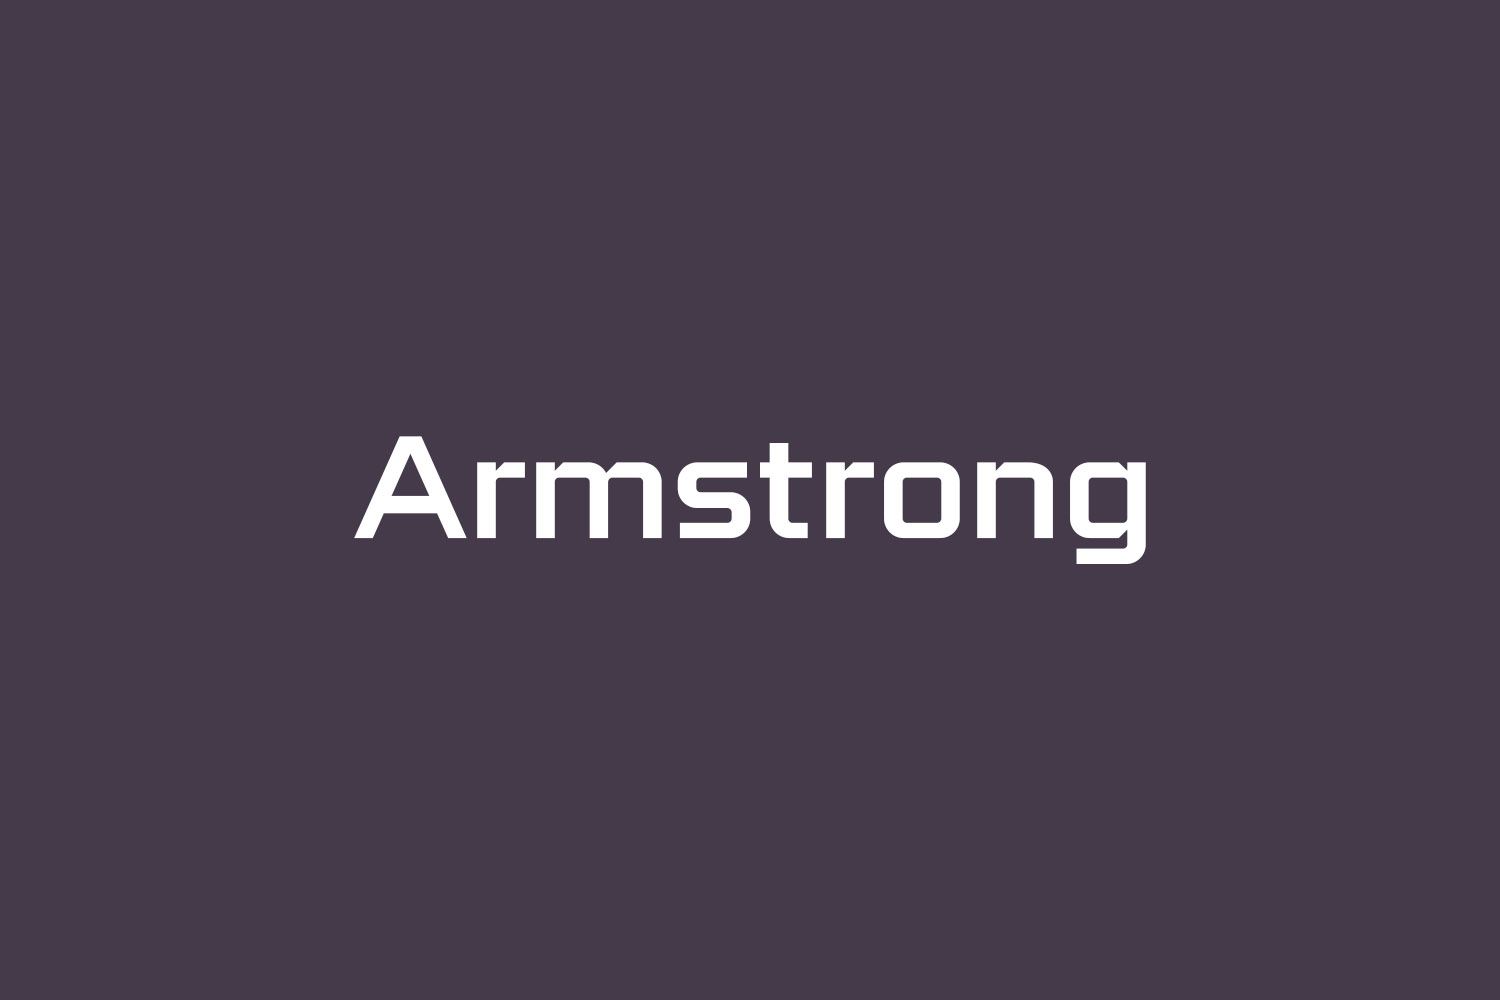 Armstrong Free Font